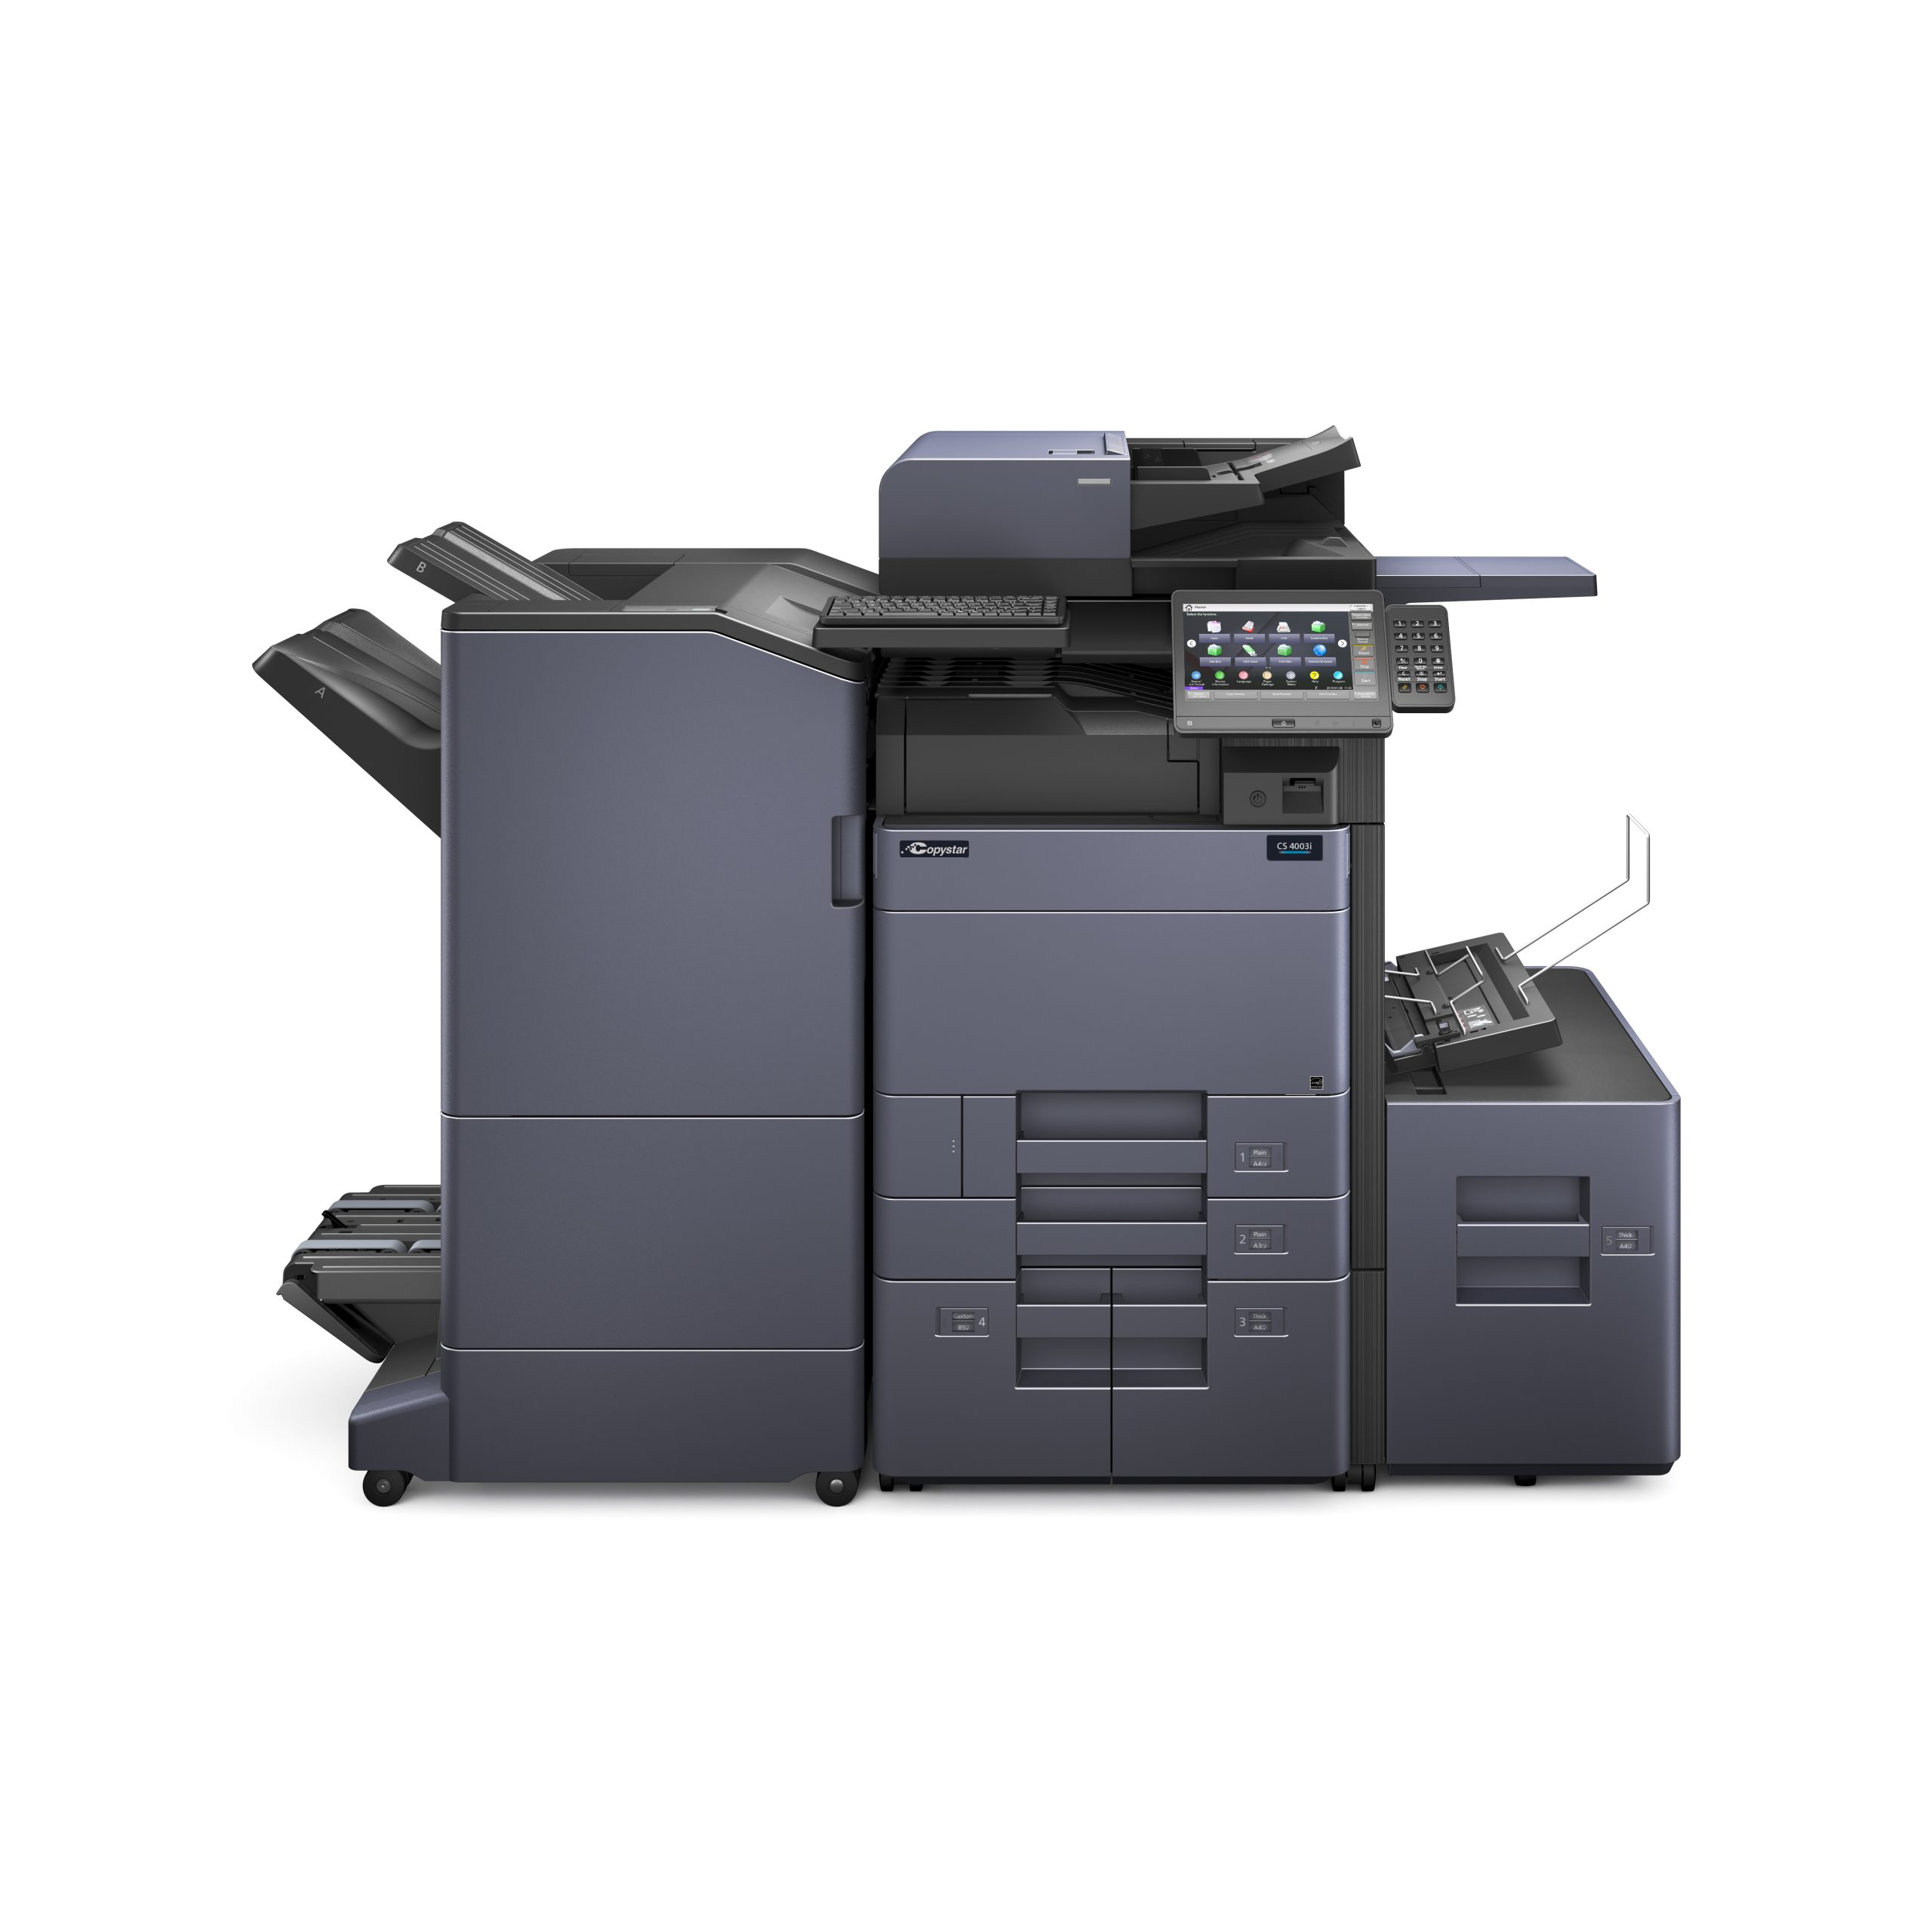 kyocera CS_4003i Copy Machine Companies Florida